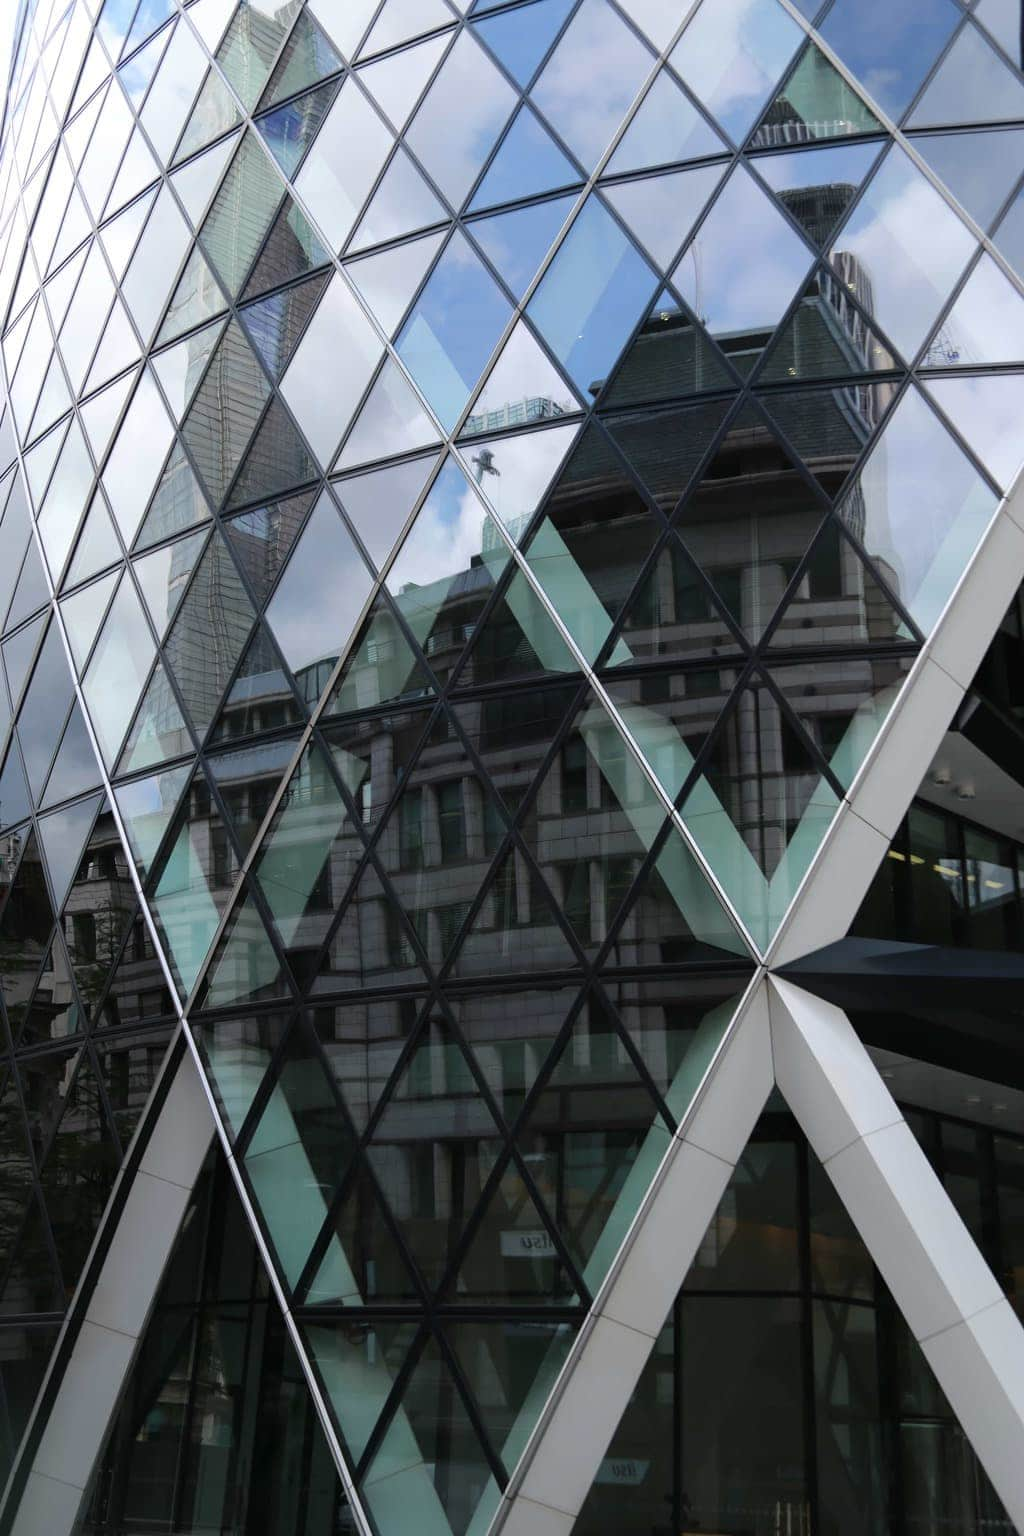 This shot was taken of a reflection in the Gherkin,EC3A 8EP. By Dpi Photography.